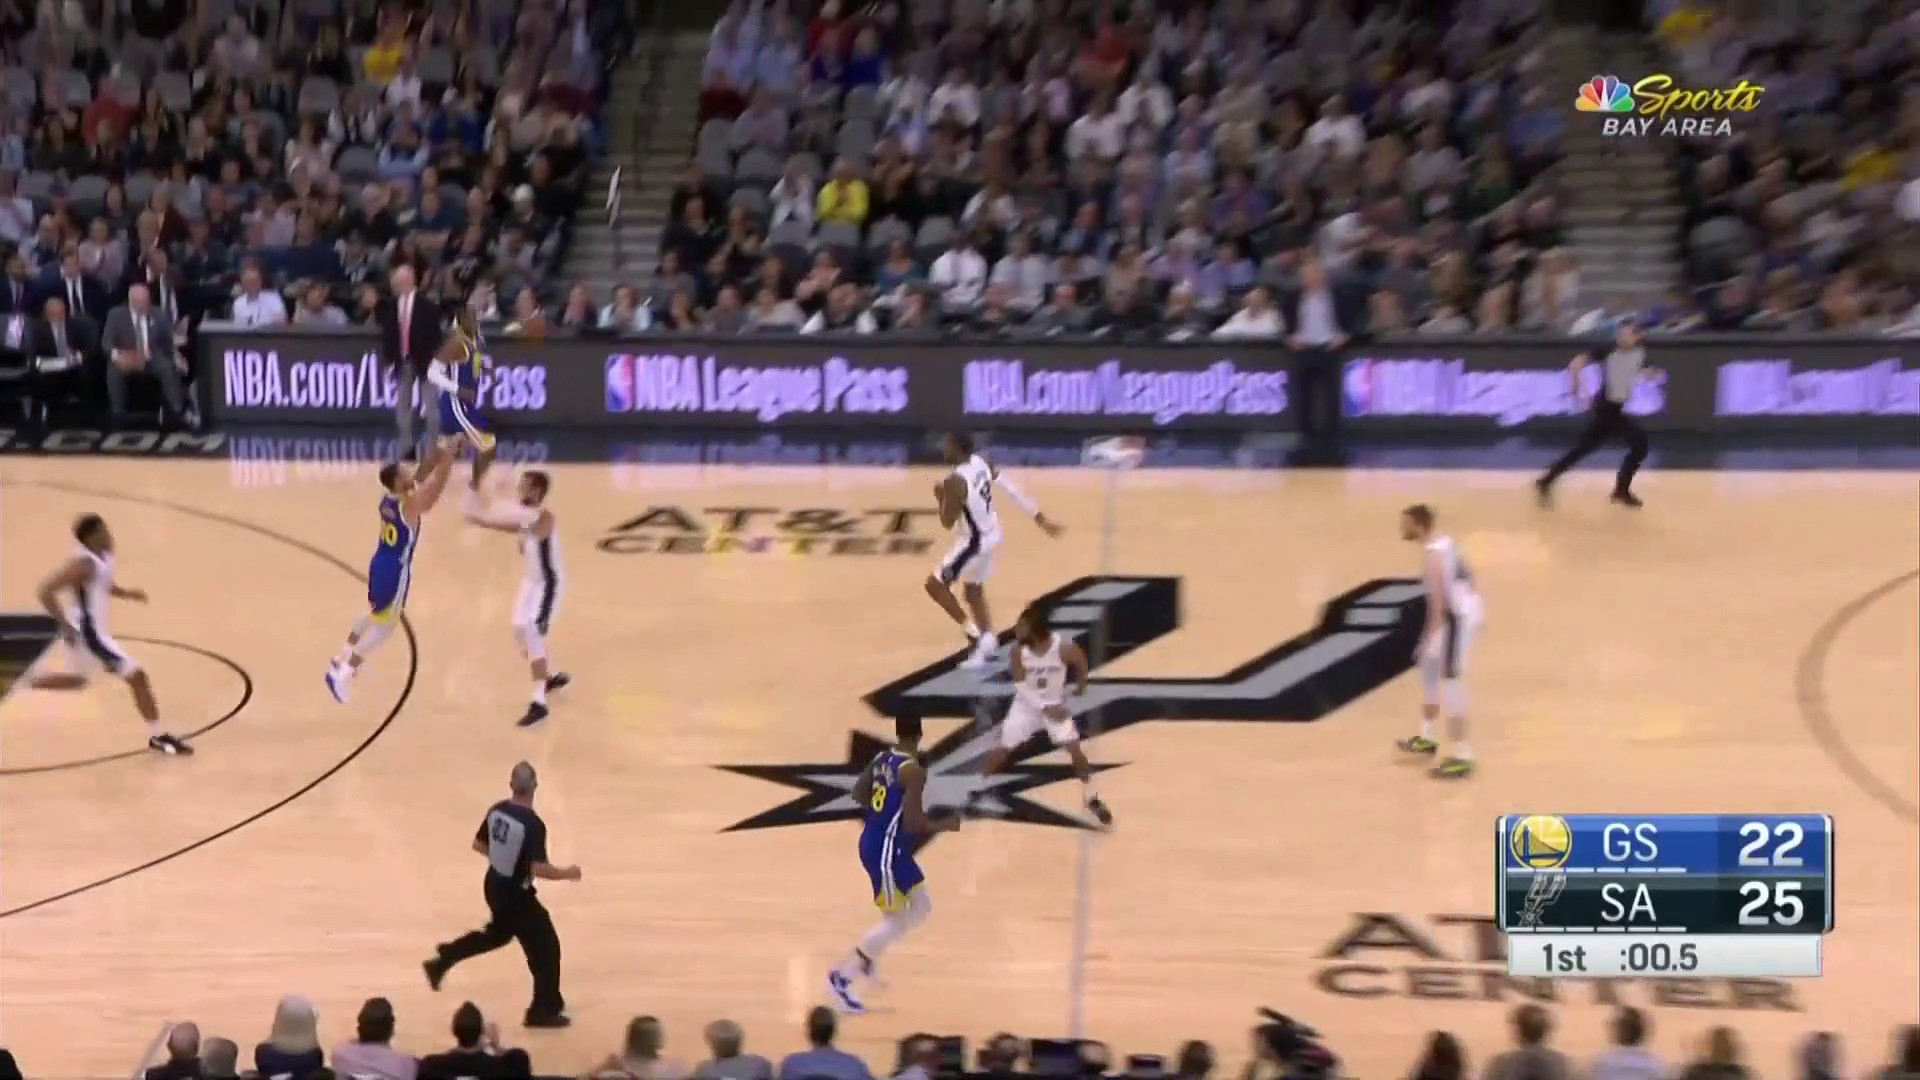 Steph Curry beats first quarter buzzer with banked-in 3-pointer vs. Spurs